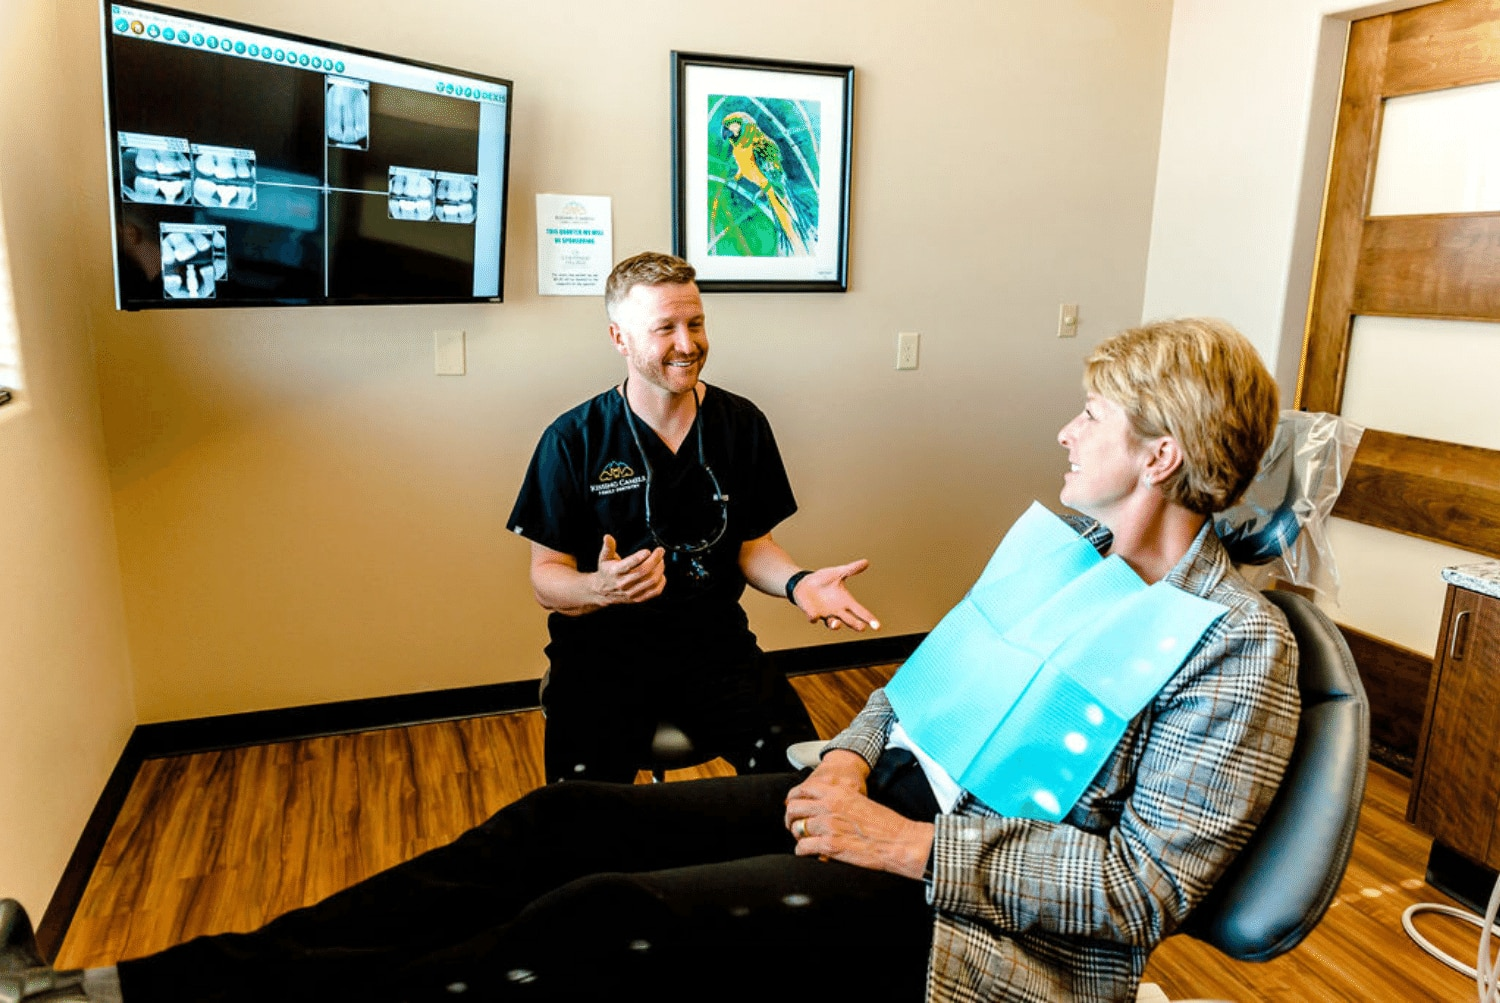 affordable dentistry with our dental savings plan - Colorado Springs CO